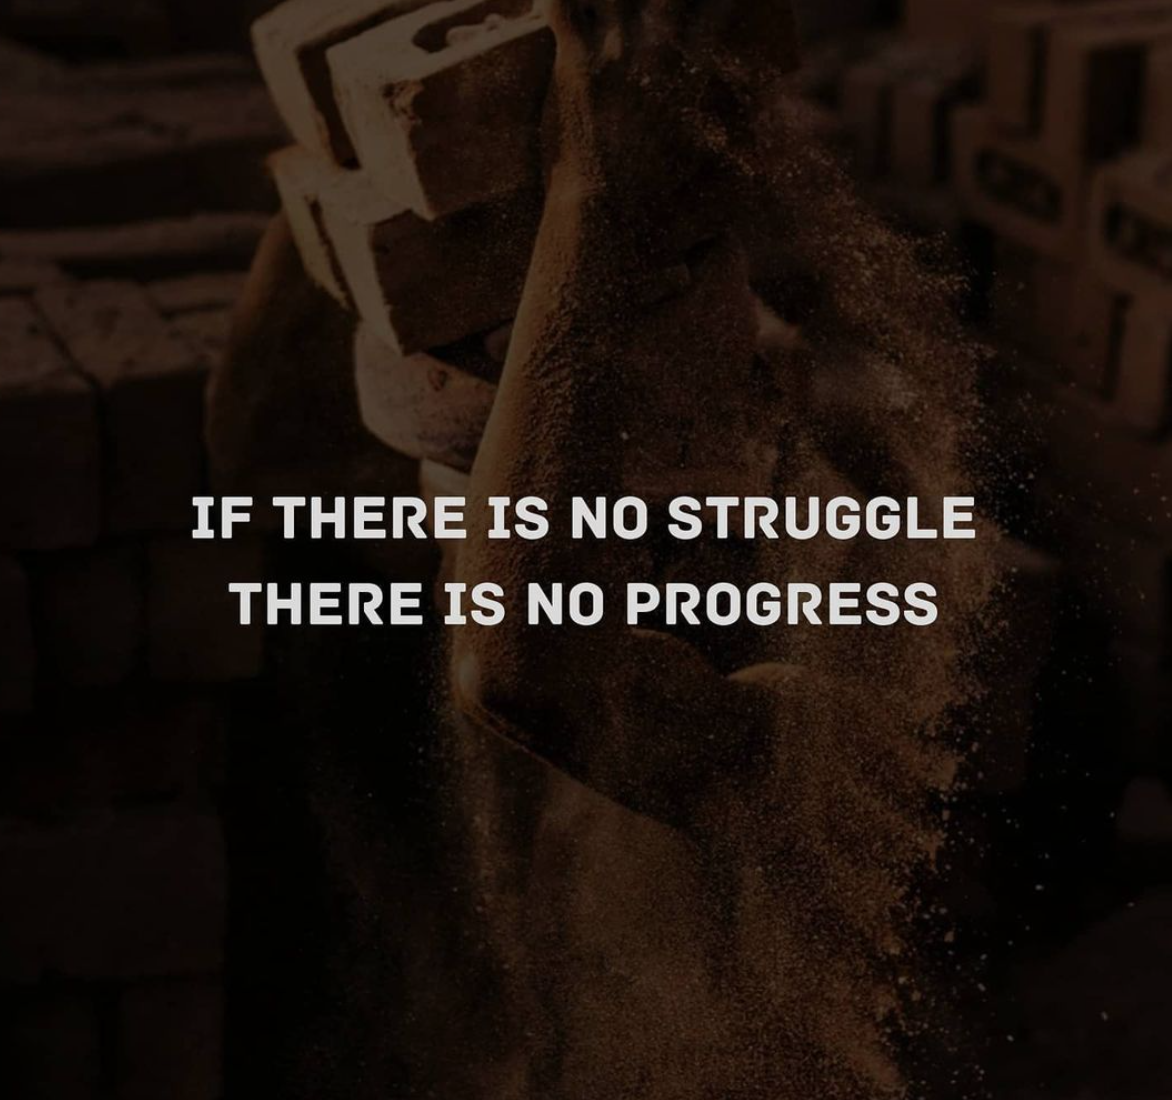 [Image] If there is no struggle, there is no progress